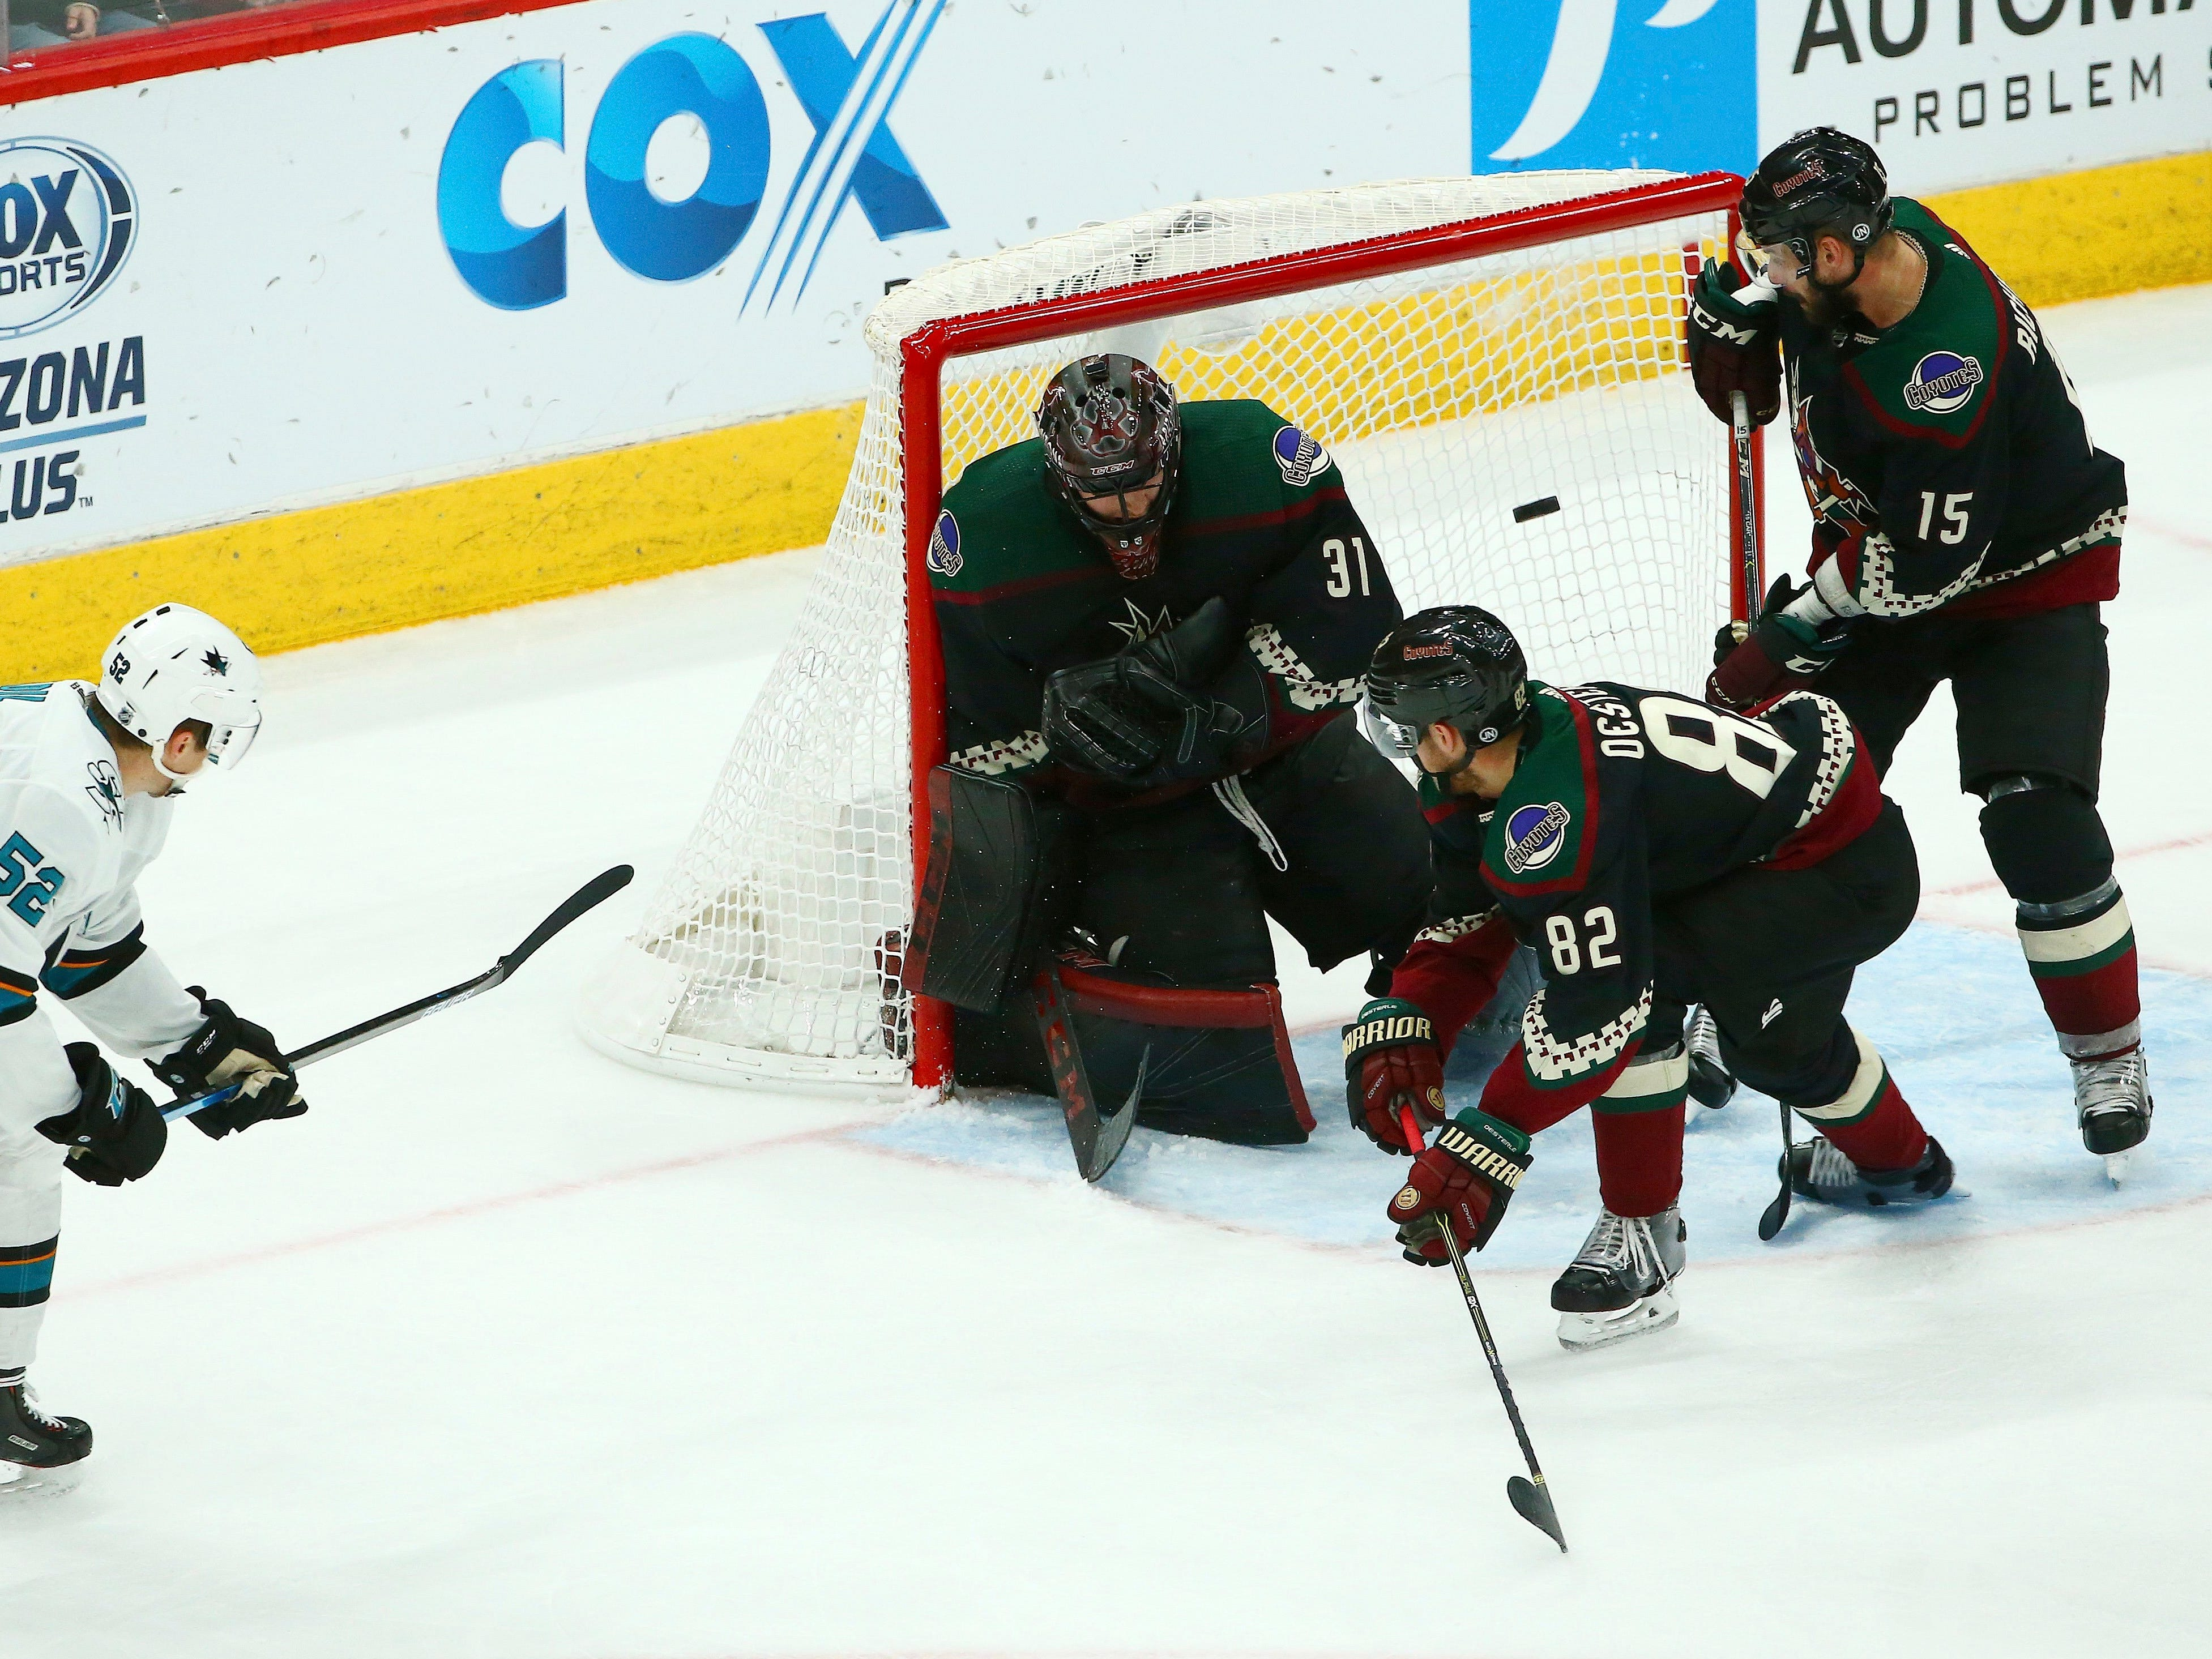 San Jose Sharks center Lukas Radil (52) gets the puck past Arizona Coyotes goaltender Adin Hill (31), defenseman Jordan Oesterle (82) and center Brad Richardson (15) for a goal during the third period of an NHL hockey game, Saturday, Dec. 8, 2018, in Phoenix. The Sharks defeated the Coyotes 5-3.